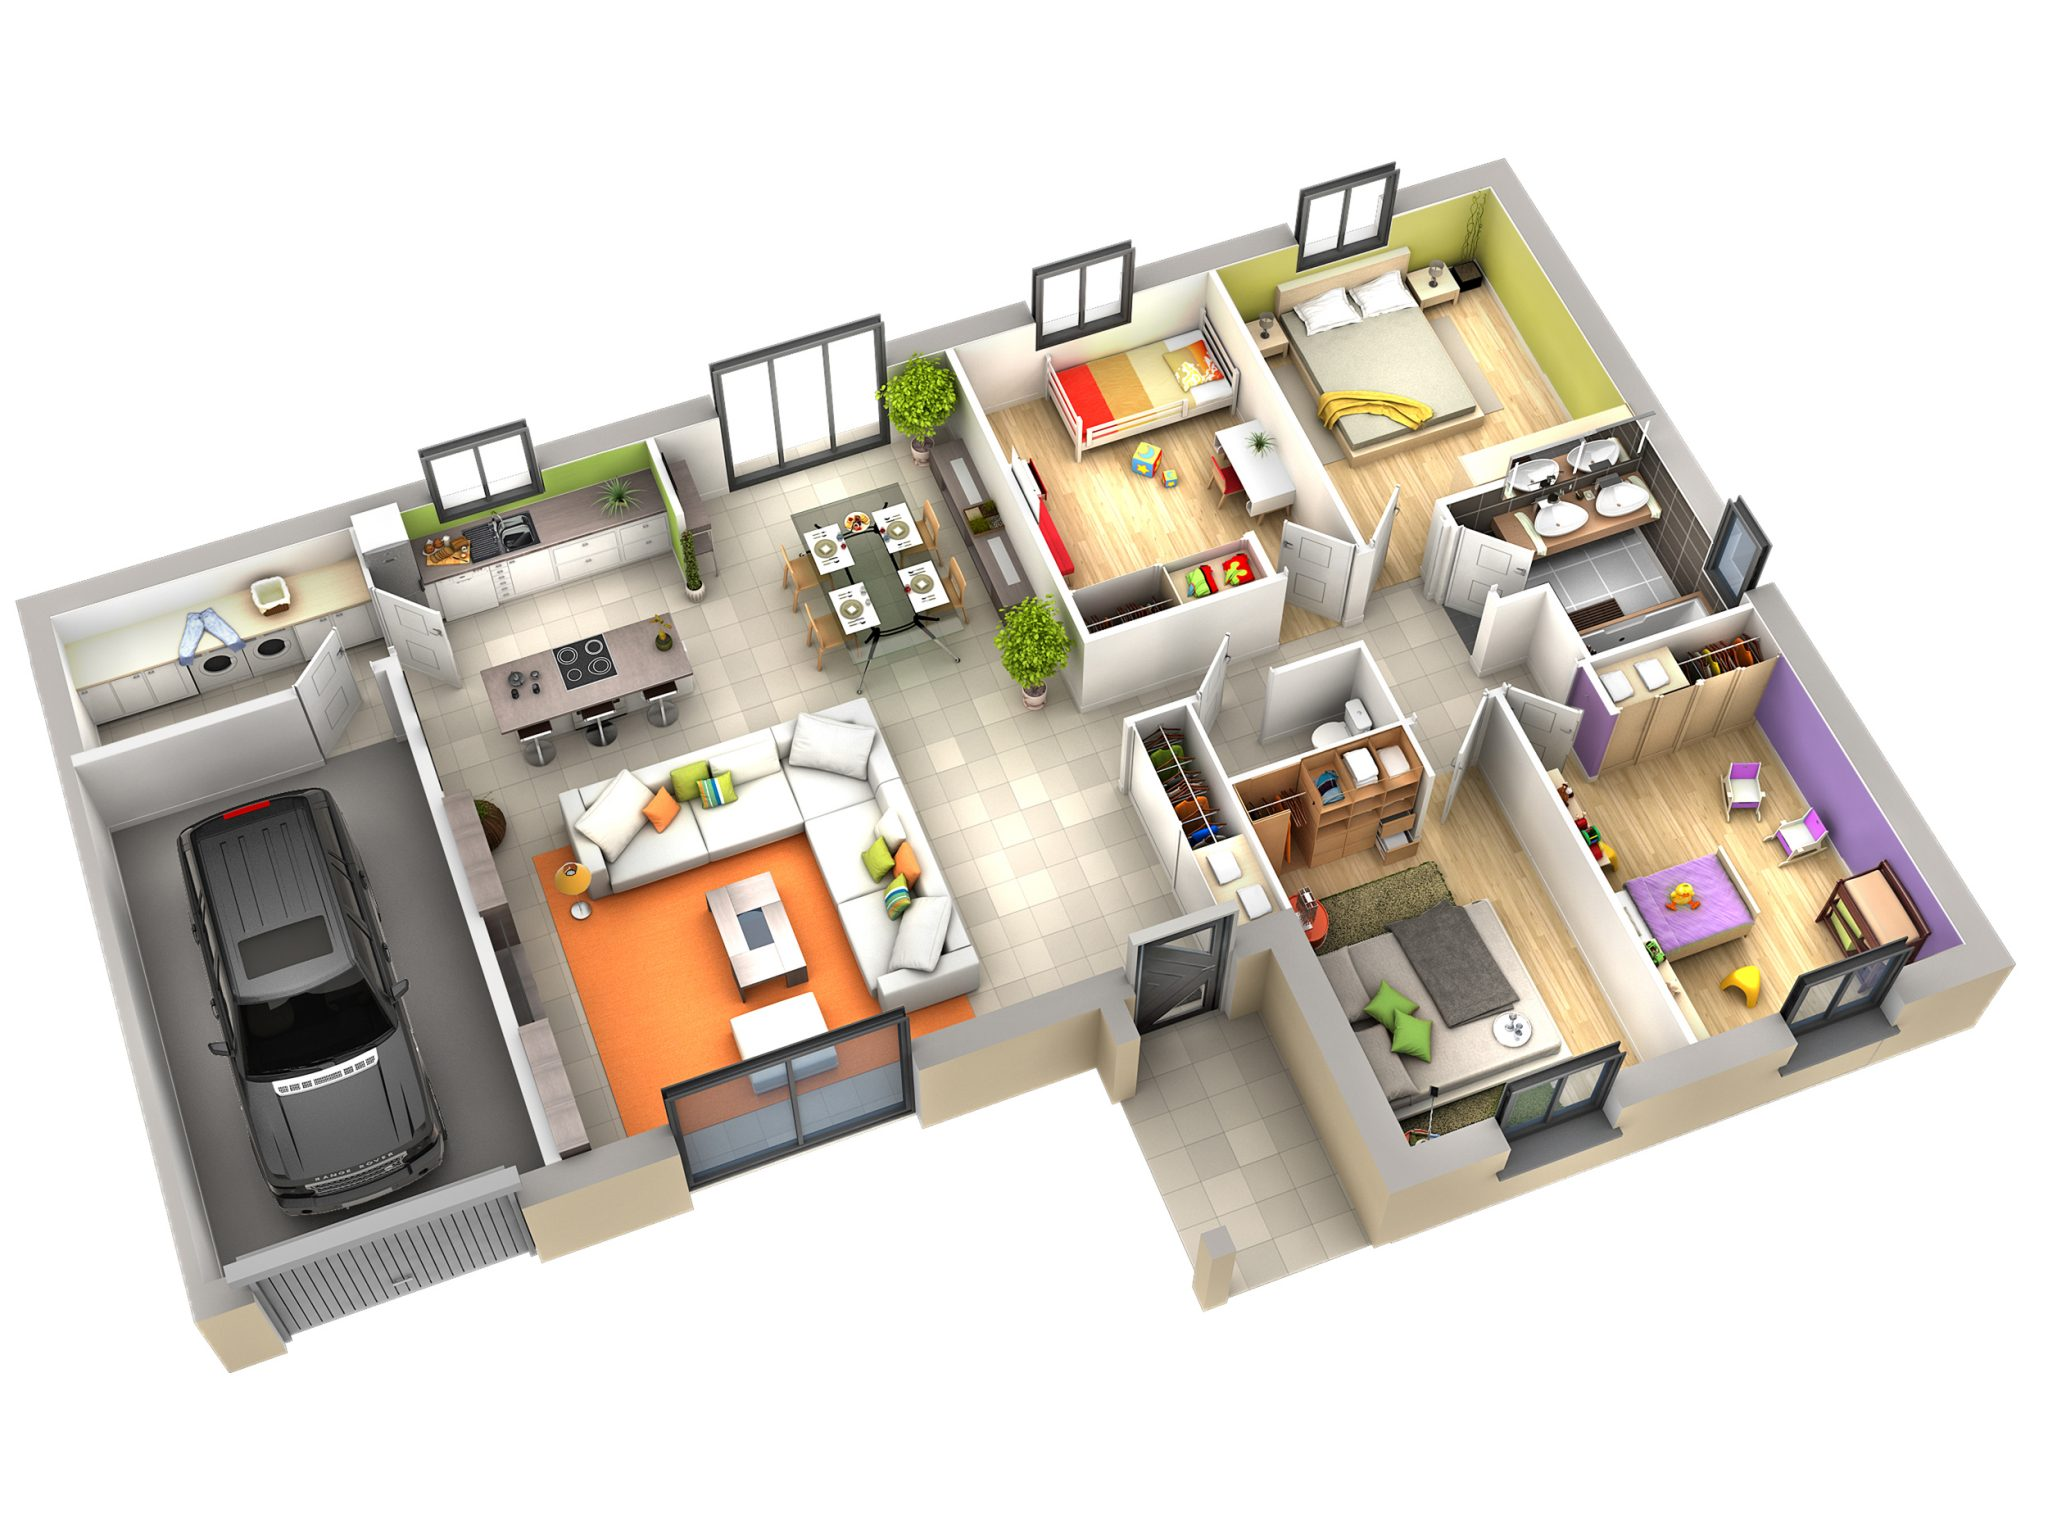 Plan interieur de maison l 39 impression 3d for Interieur maison 3d